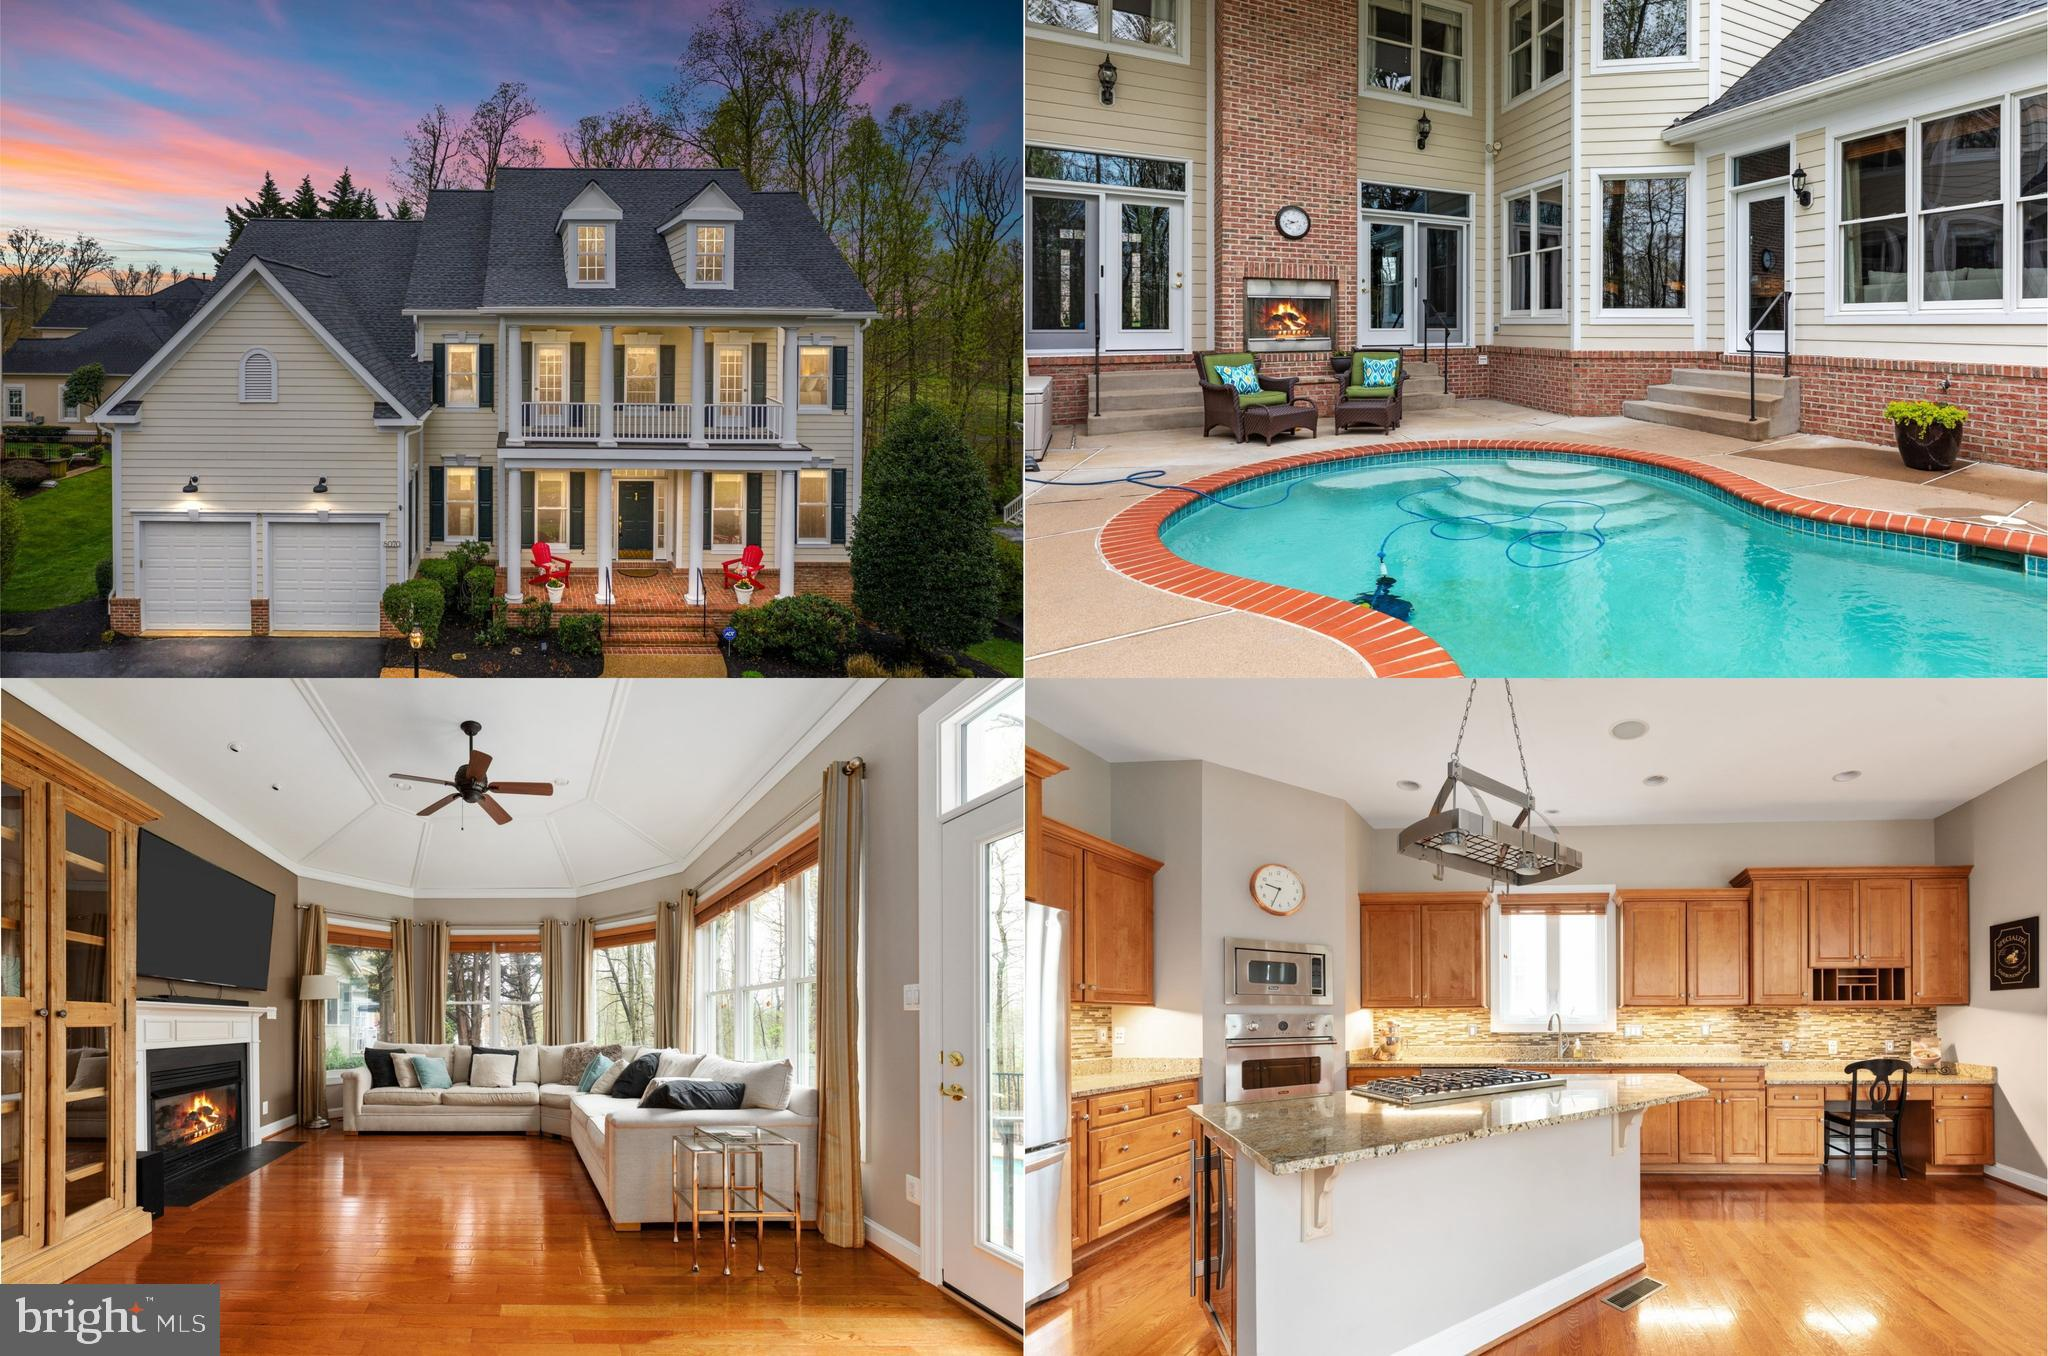 Situated in the sought after gated community of Lake Manassas this spectacular fully custom-built Ki